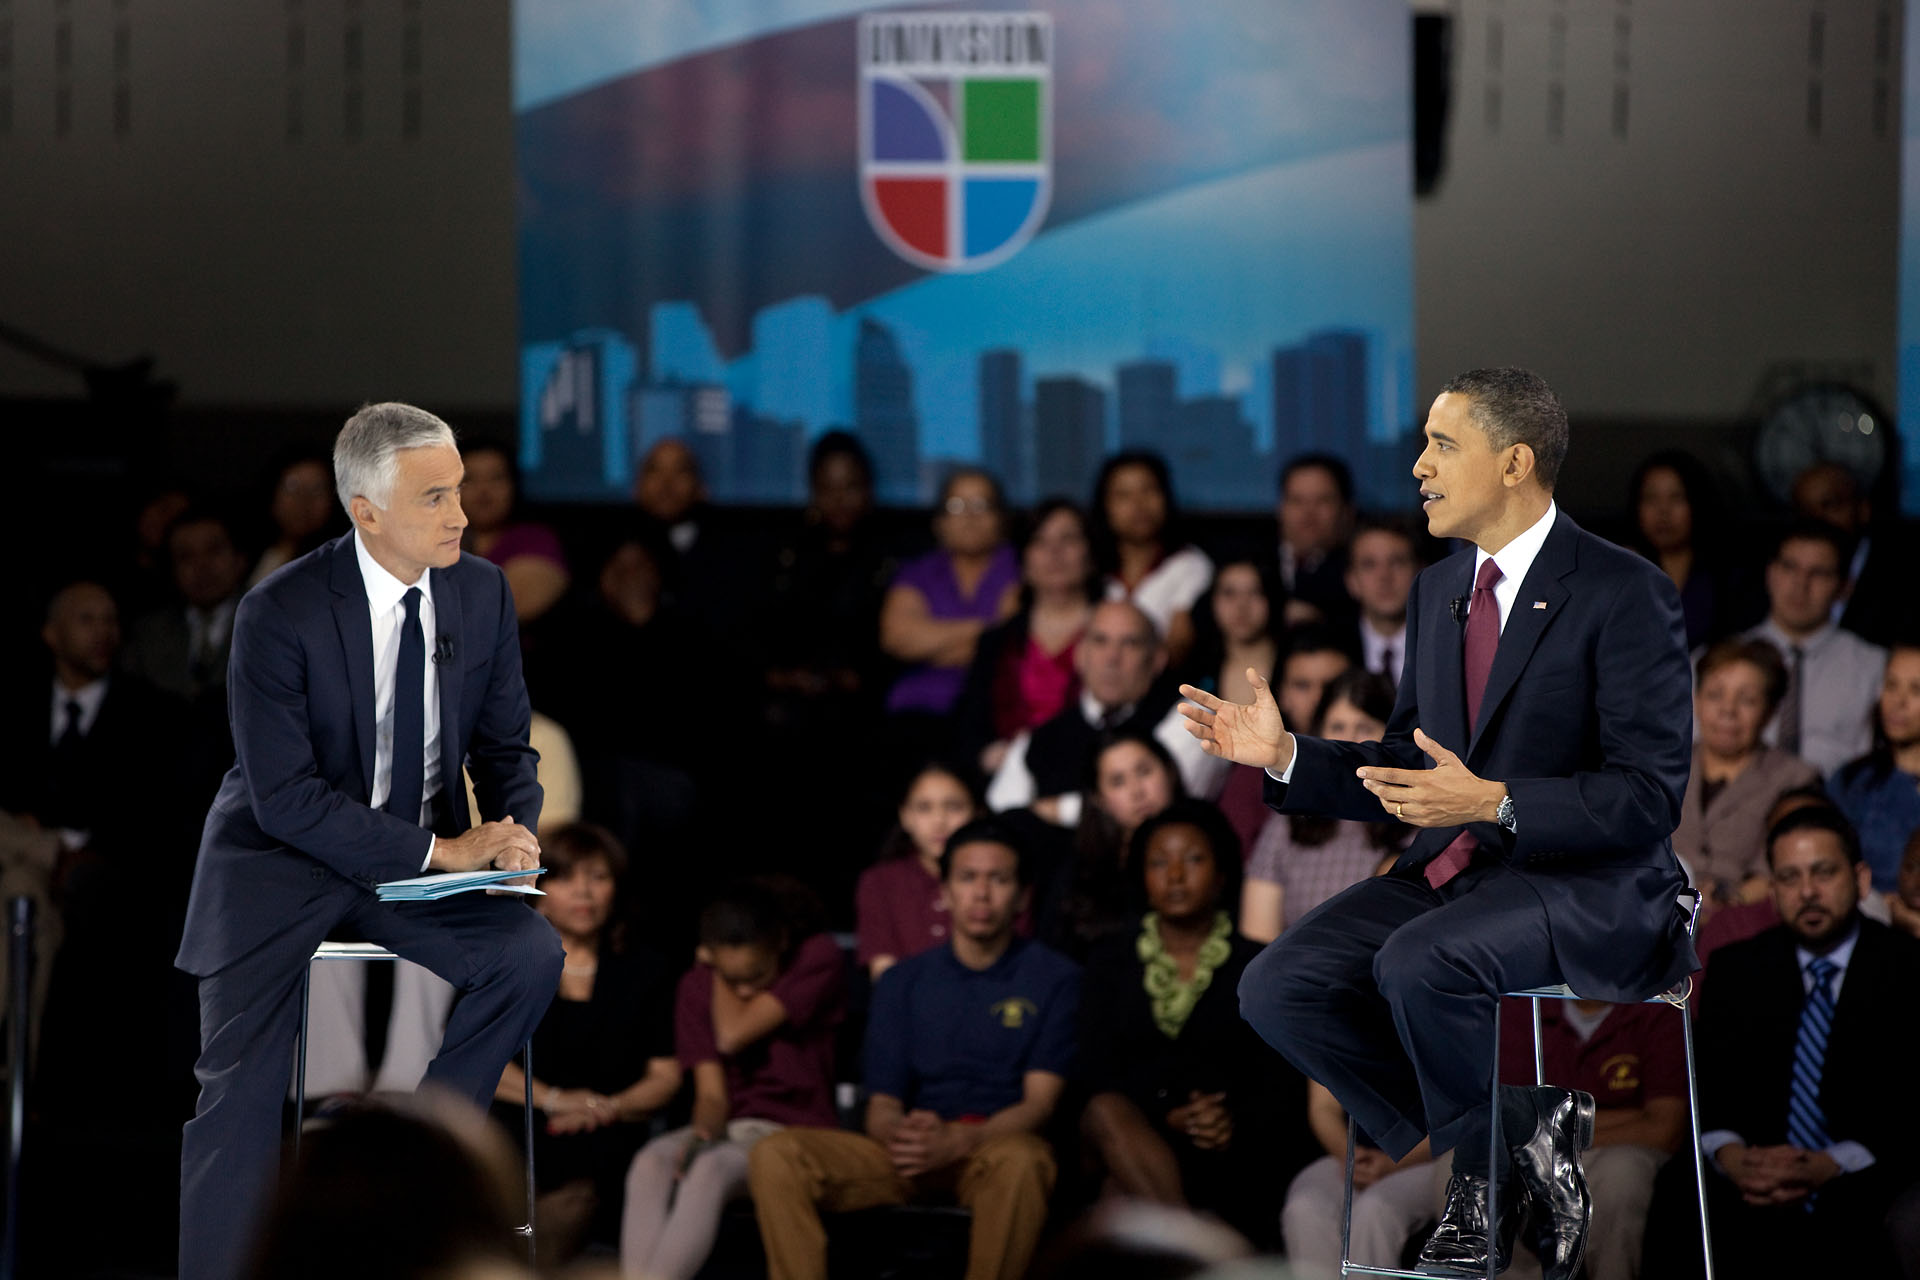 President Barack Obama with moderator Jorge Ramos at a Town Hall Meeting Hosted by Univision - Spanish